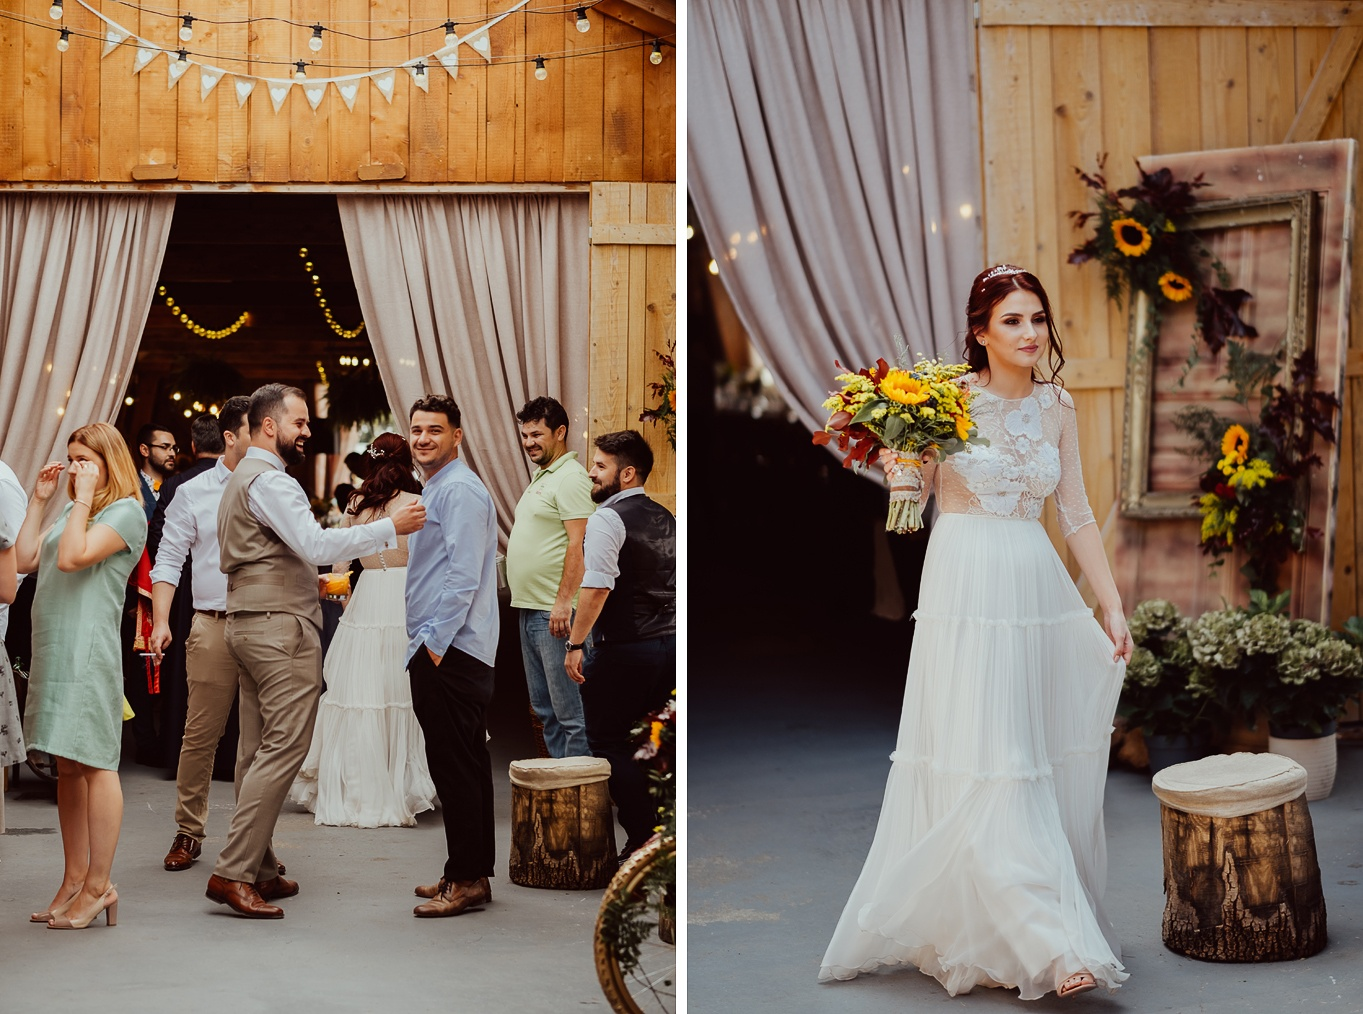 lightveils-bohemian-barn-wedding-photography-bucharest-romania